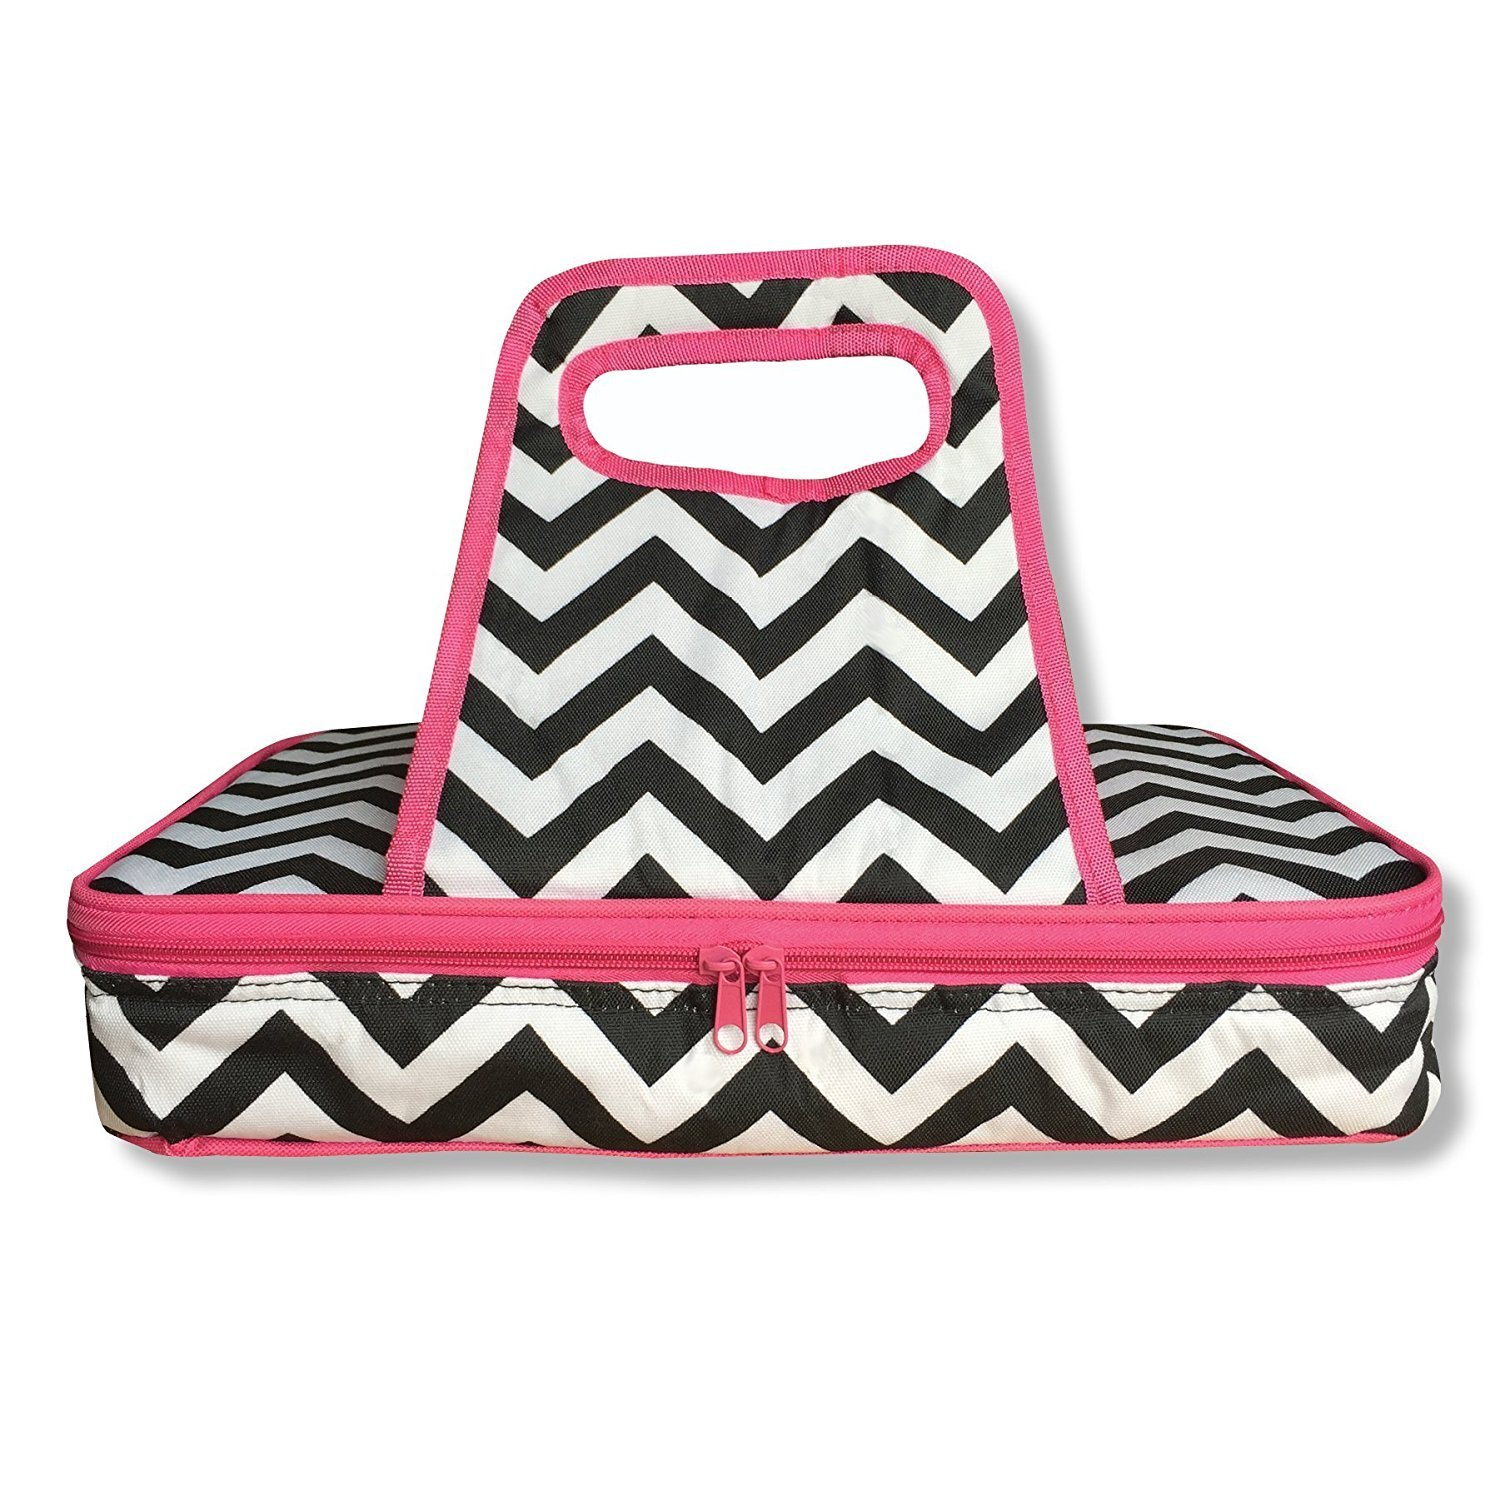 """Thermal Insulated 10""""x15"""" Pink Black and White Chevron Casserole Carrier - Hot or Cold - Double Zipper and Handles"""